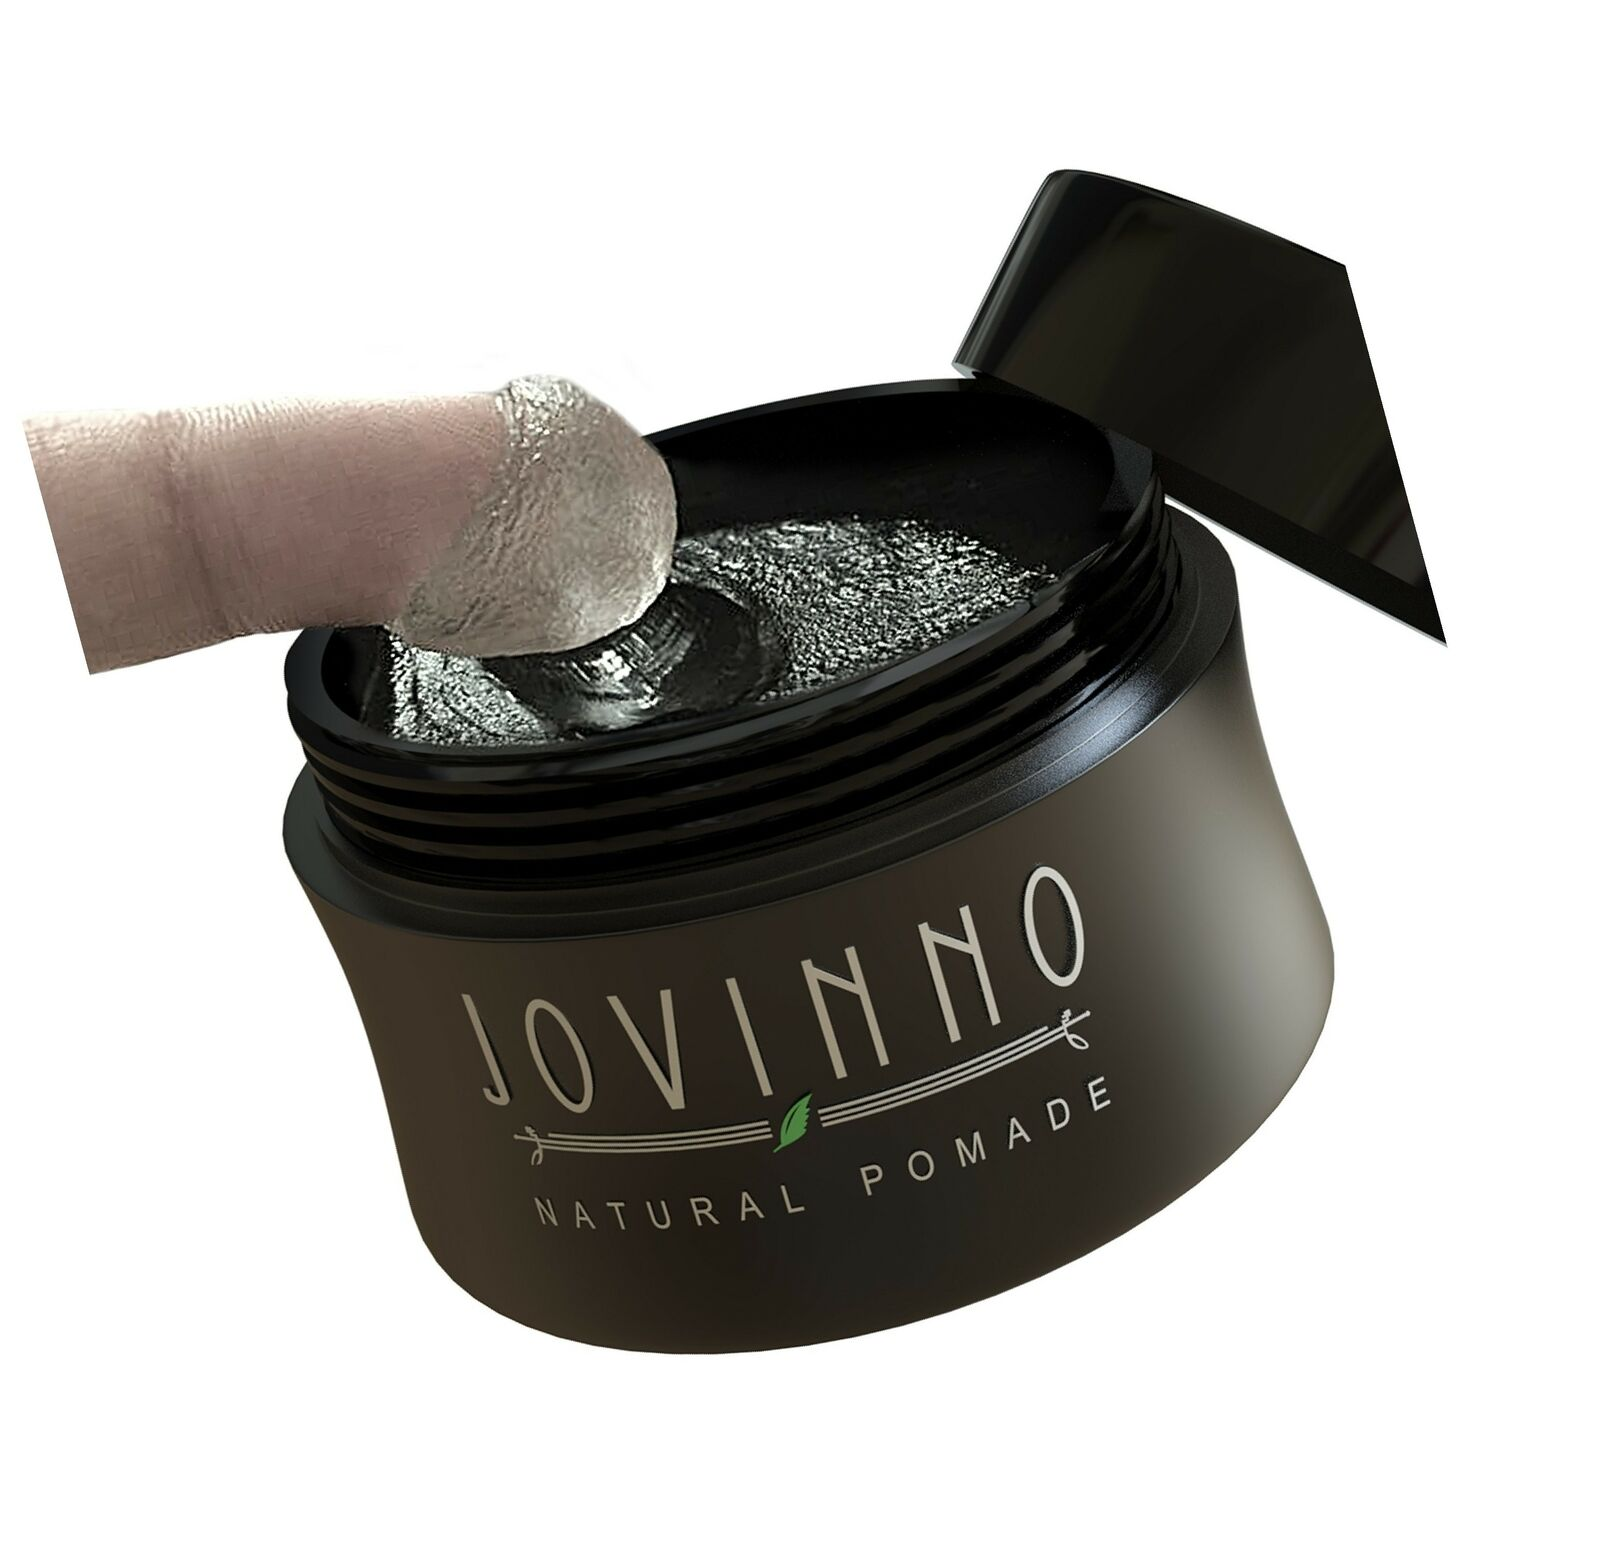 Jovinno Premium Natural Hair Styling Pomade Water Soluble Wax 5 Oz For Sale Online Ebay